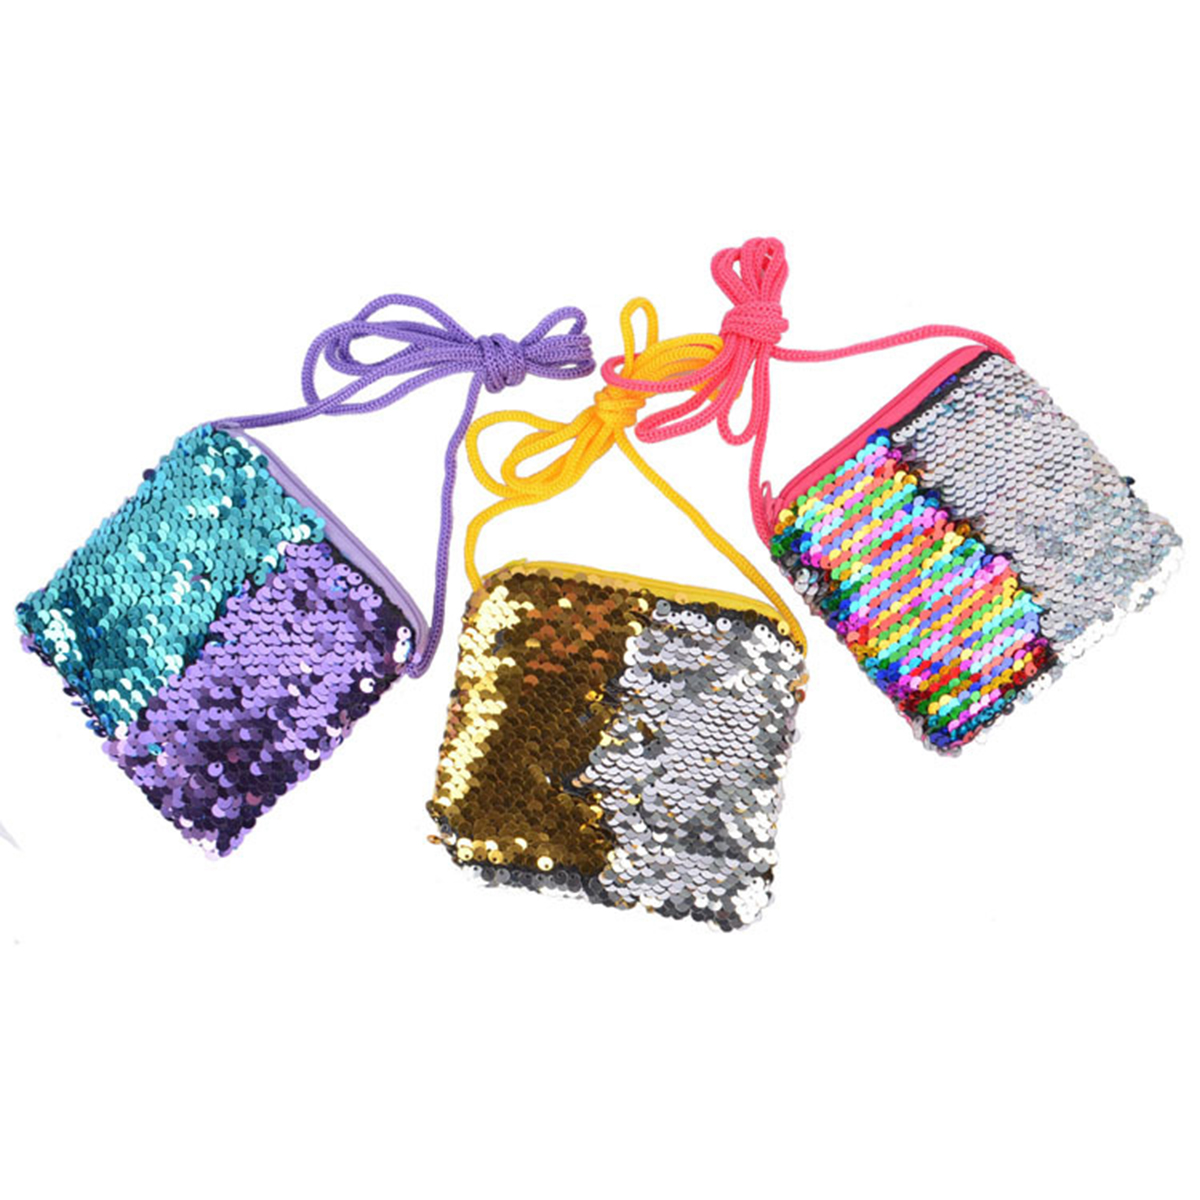 2019 Fashion Women Kids Sequins Coin Purse Wallet Girl Zipper Clutch Coin Earphone Package Handbag Purse Bags Pouch